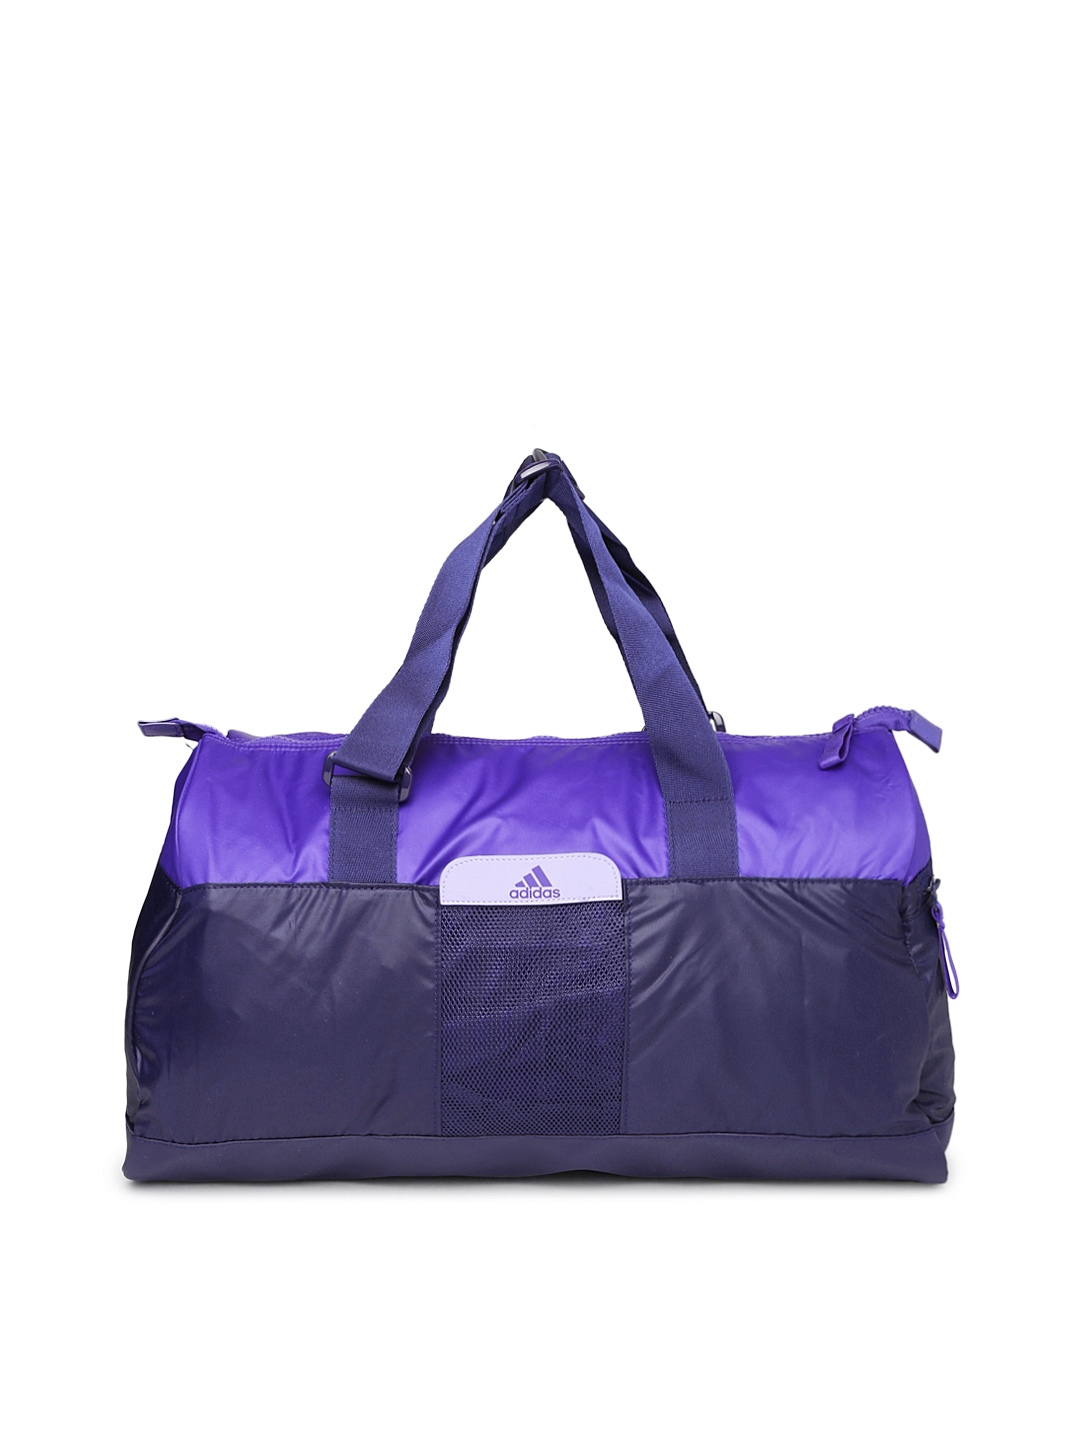 Simple Timbuk2 Iris Duffel Bag  Womens Get Special Price  The Businesses Following These Types Of Business Models Are More Generally Referred Since Brand Owners Adidas Have Been Working Within The Sportswear Market For Your Greatest